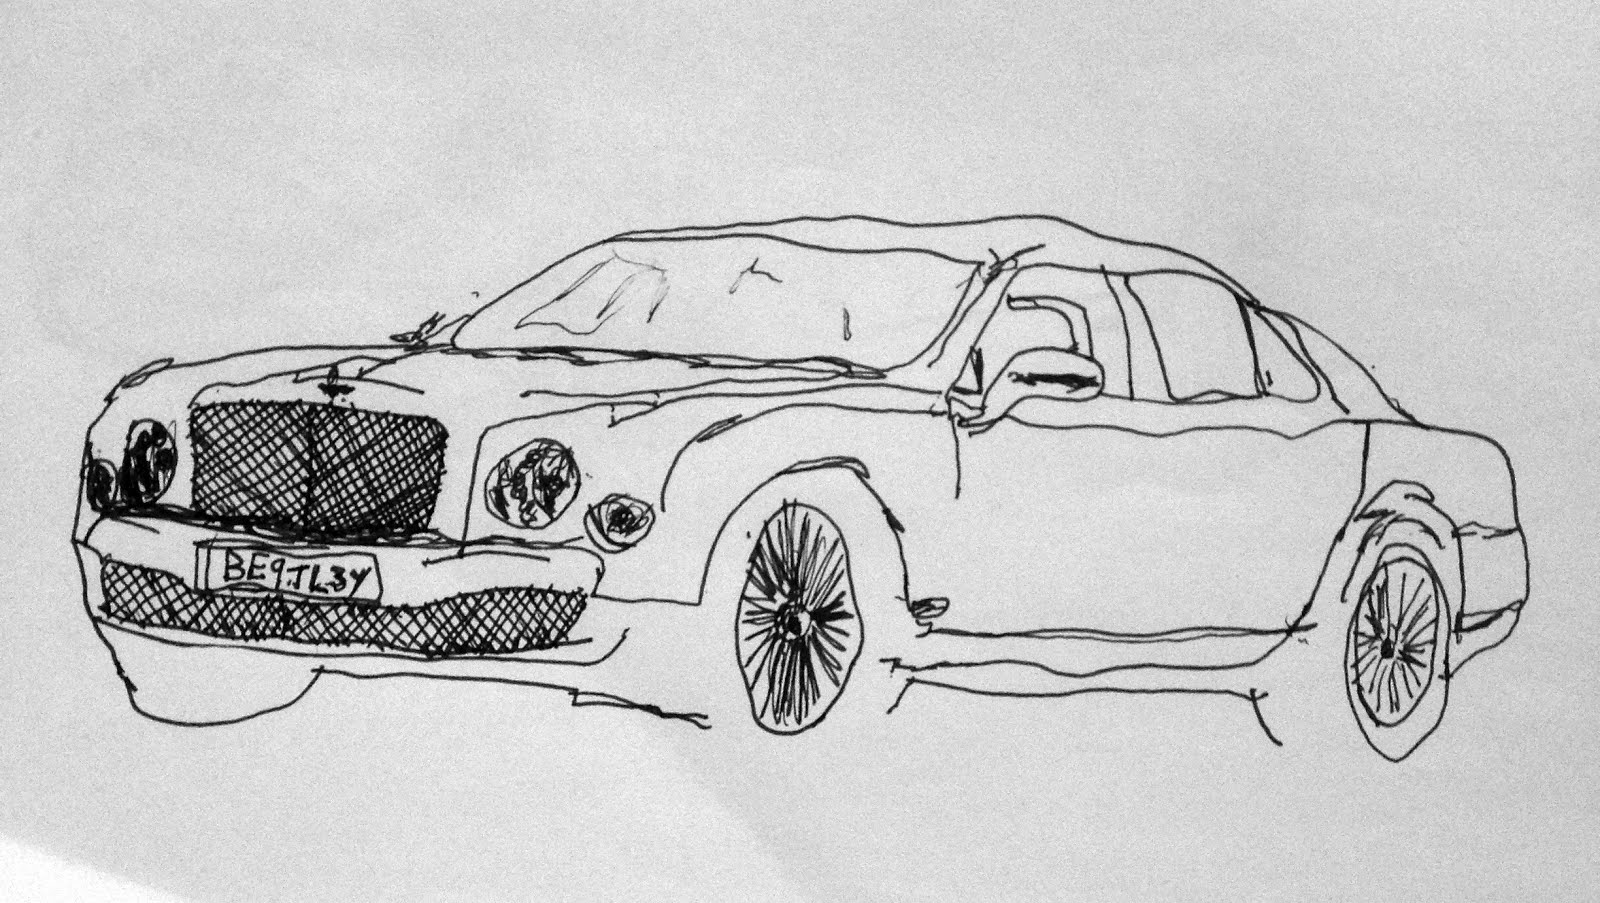 Flying Lightbulb: Drawings of My Top 6 Favourite Vehicles